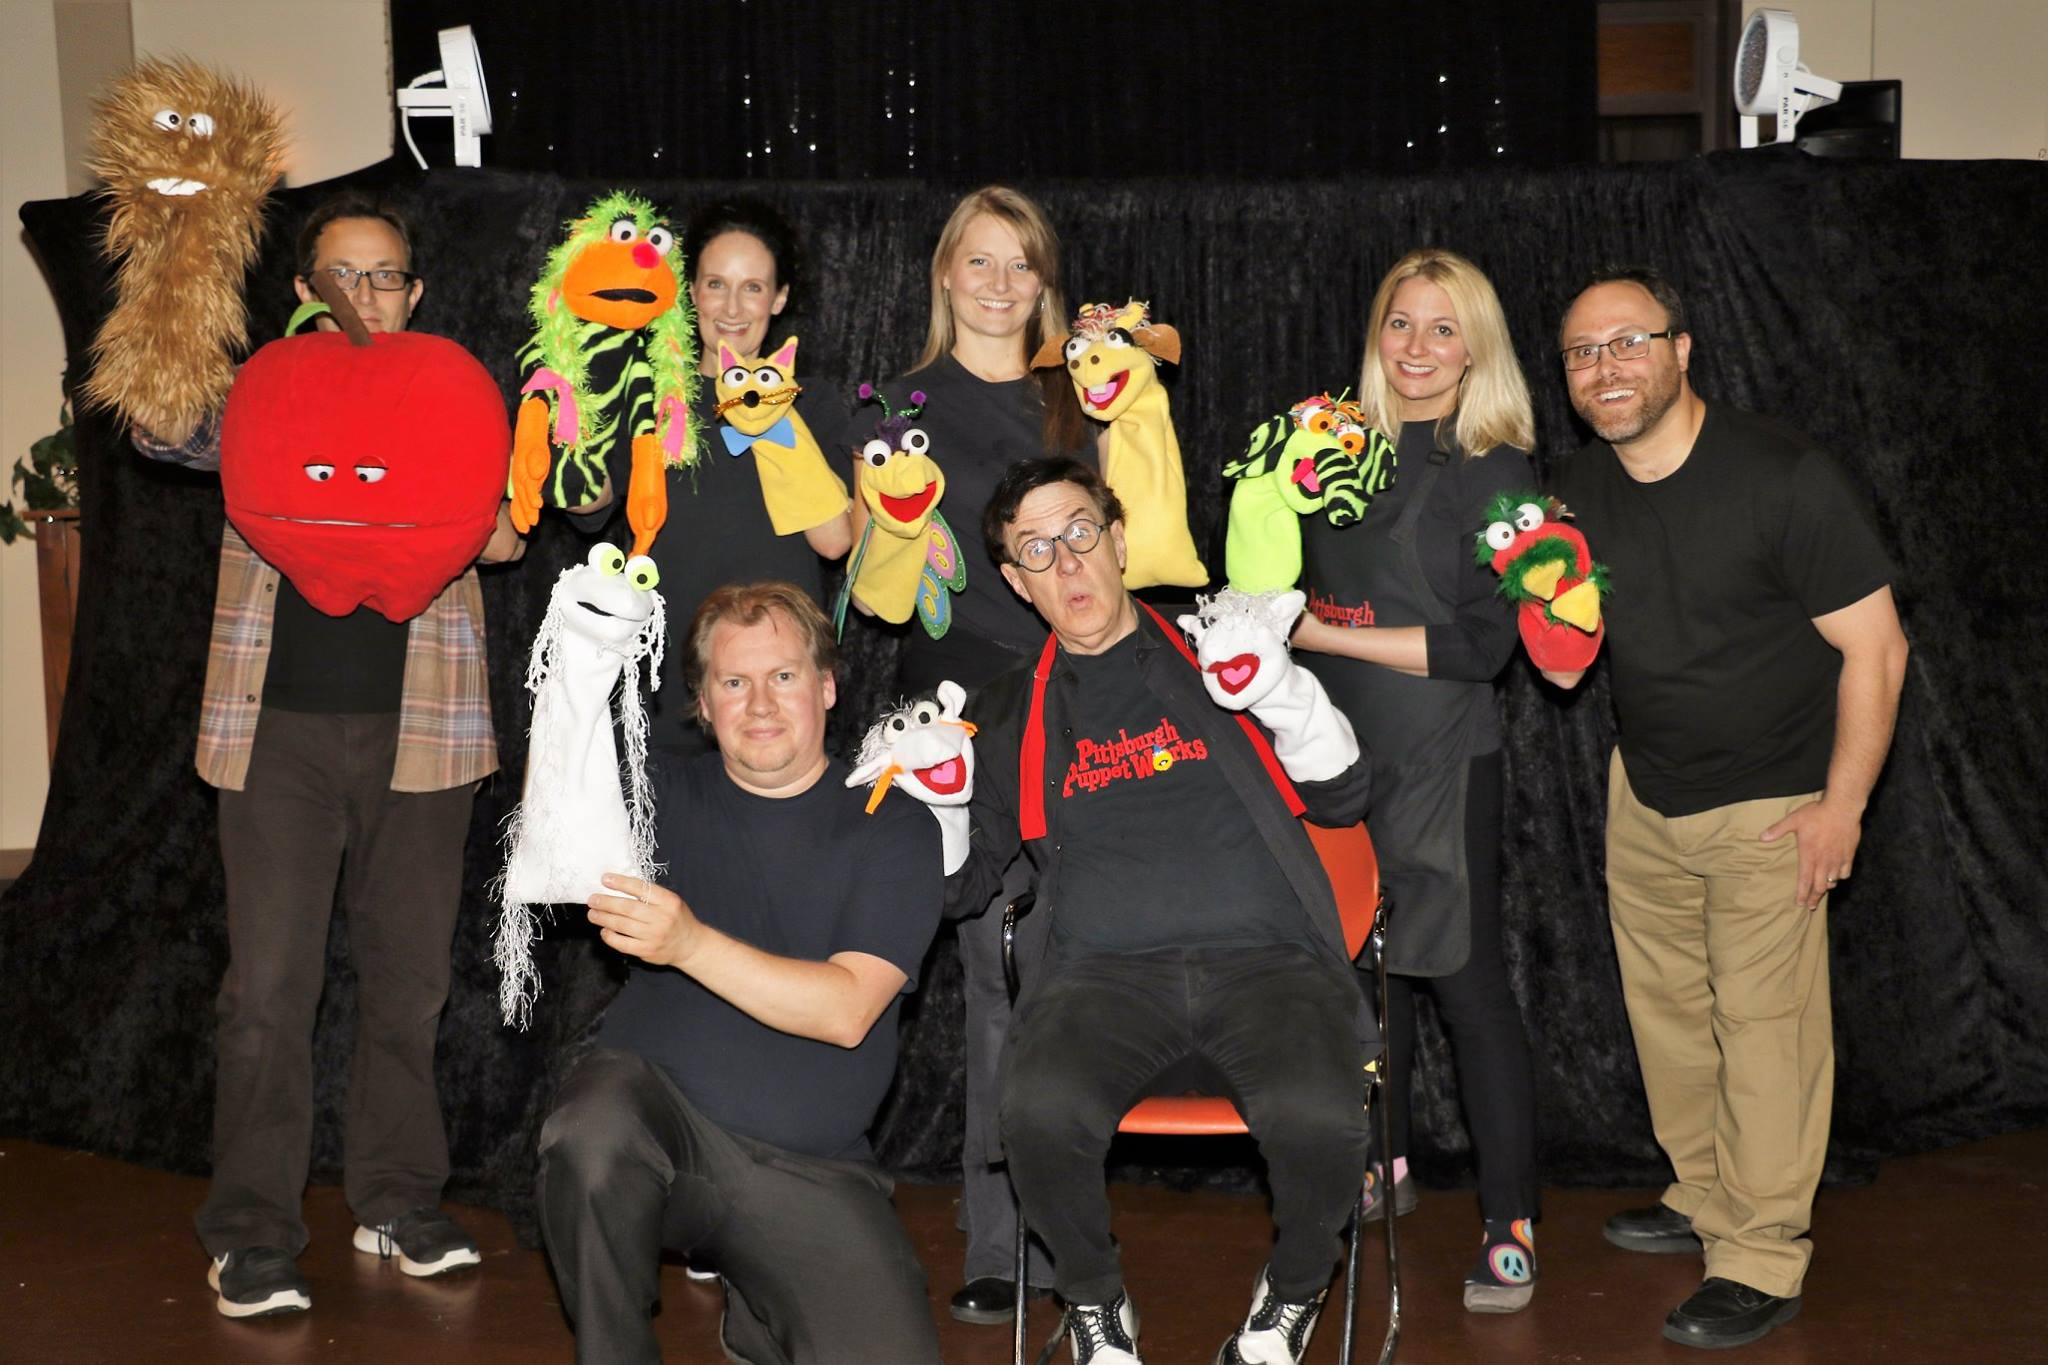 workers of Pittsburgh Puppet Works holding puppets behind-the-scenes of party